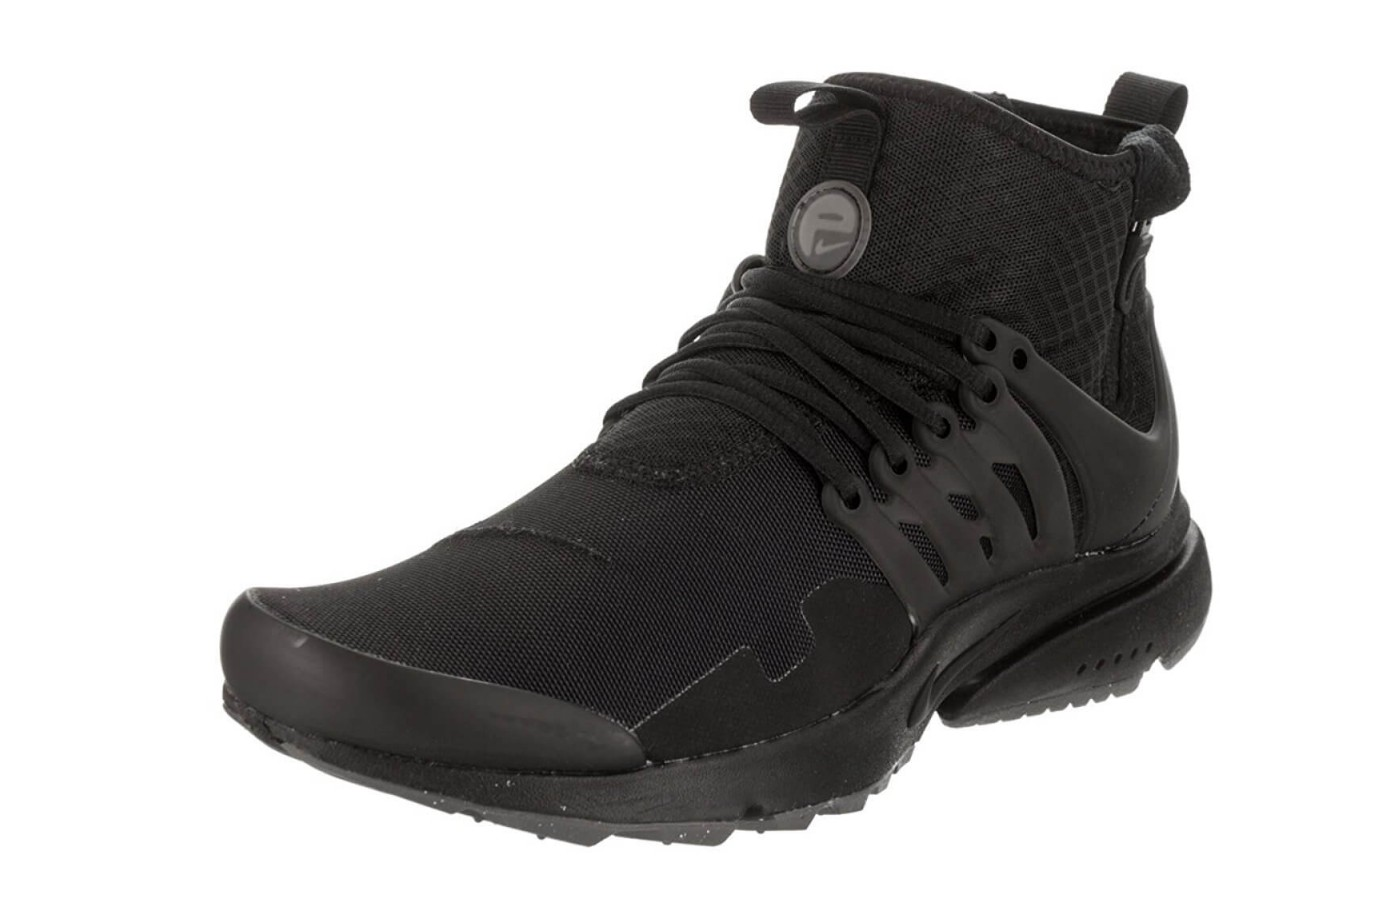 An angled view of the Nike Air Presto Mid Utility.